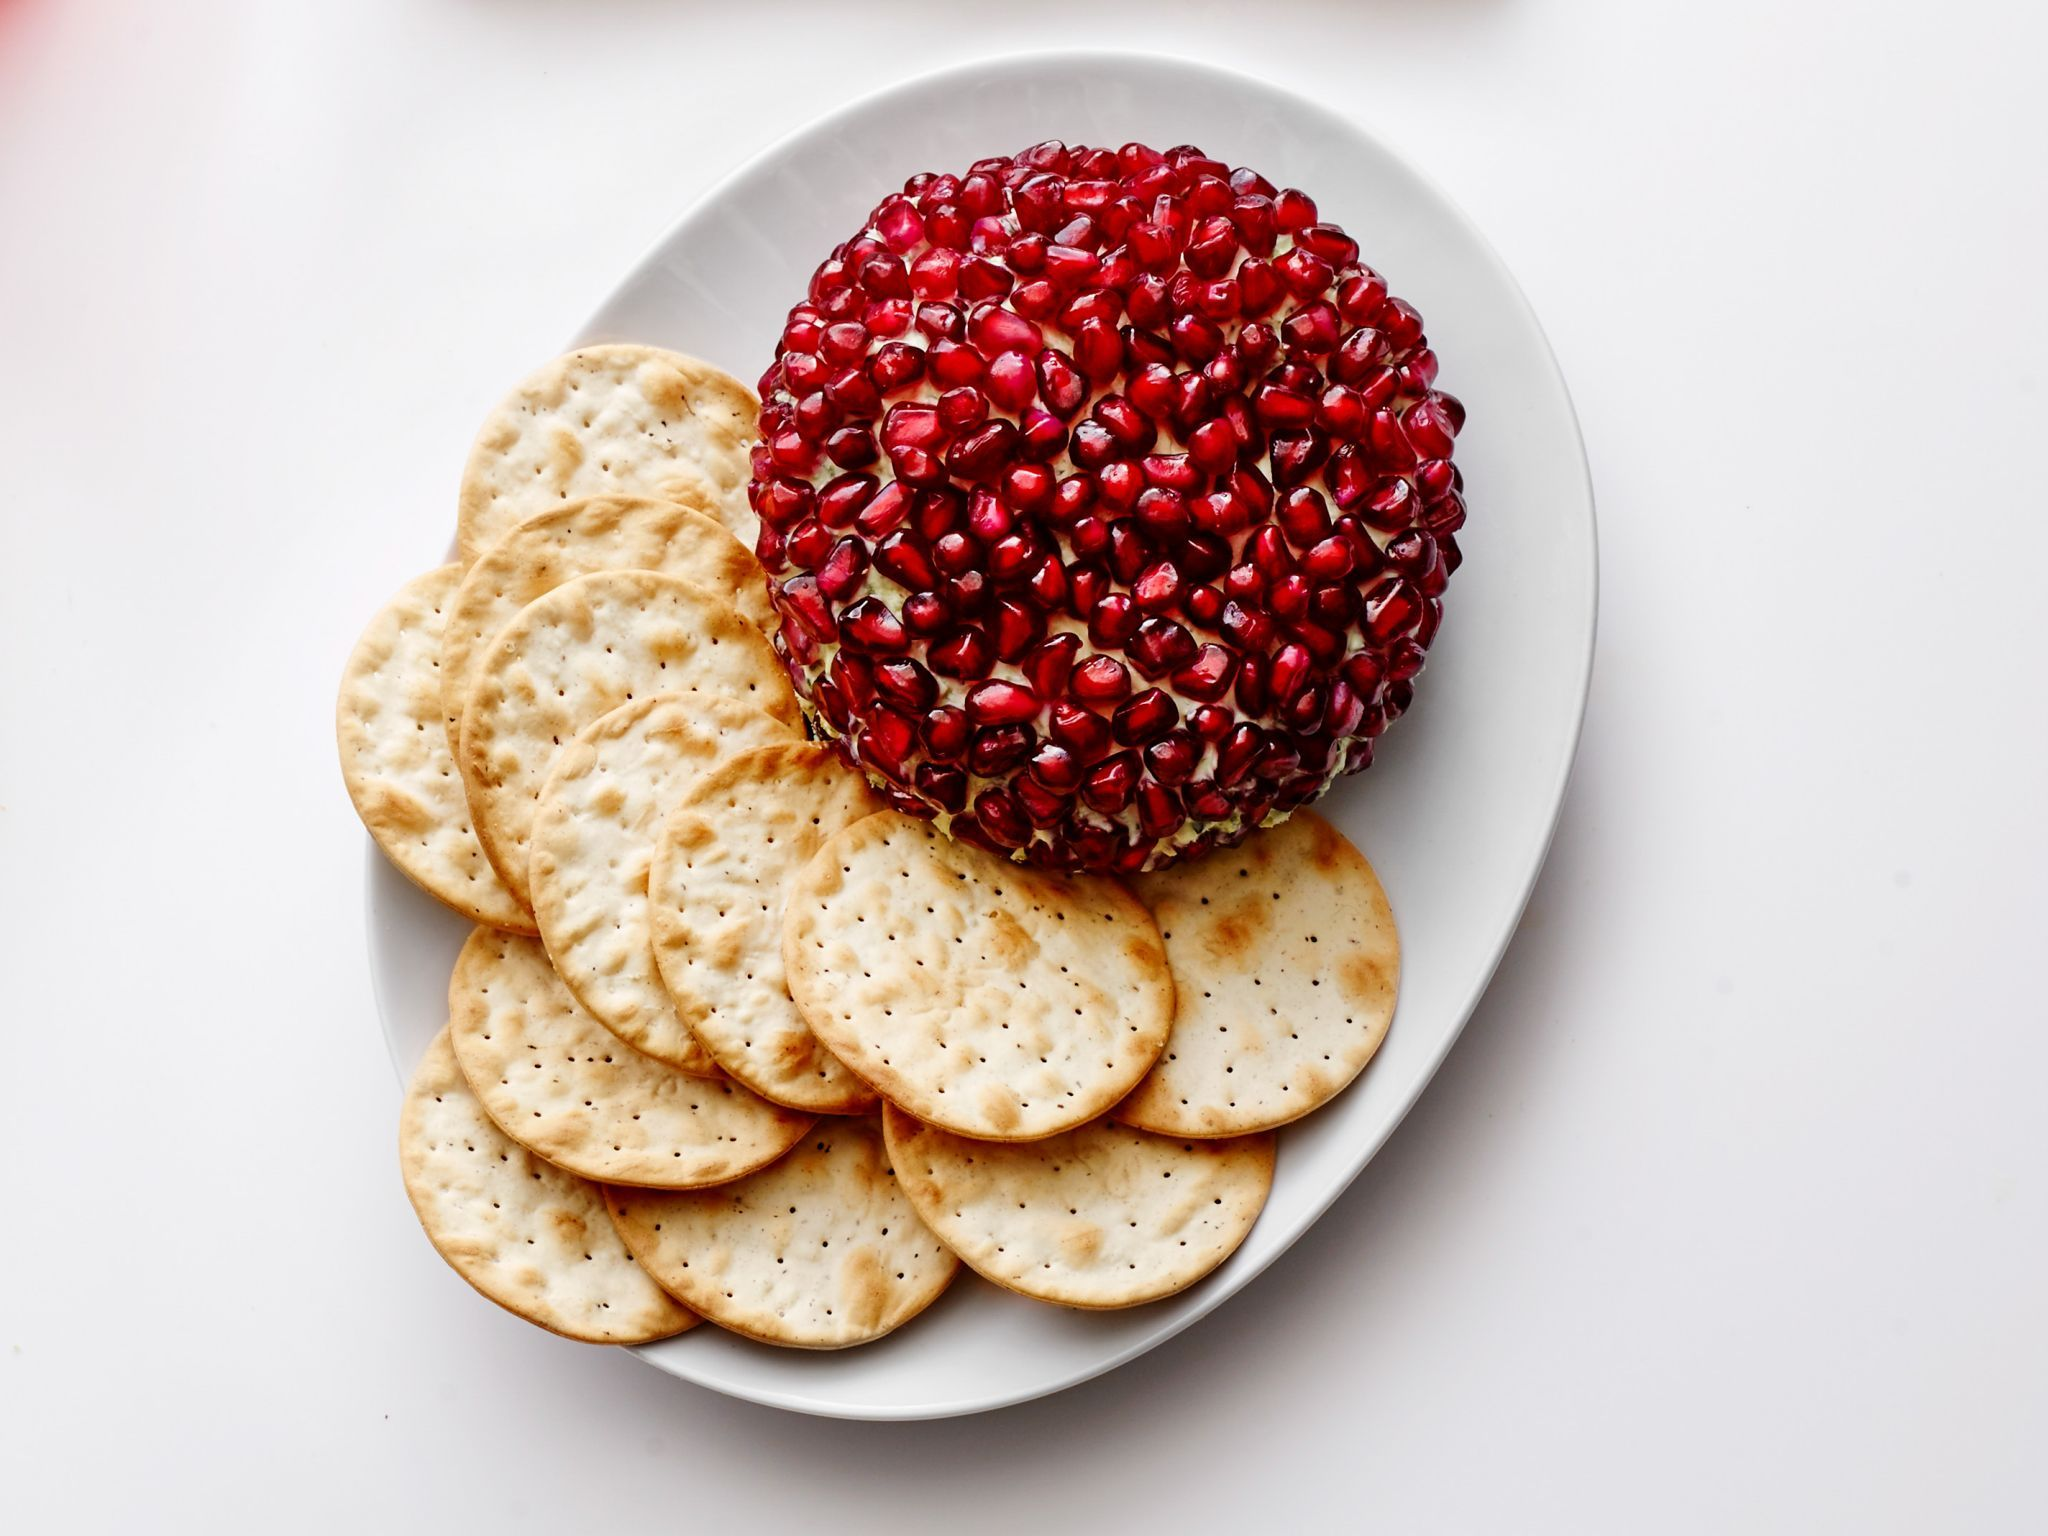 Pomegranate cheese ball recipe from food network kitchen via food get easy thanksgiving appetizer recipes from food network including deviled eggs butternut squash soup and stuffed mushrooms forumfinder Choice Image